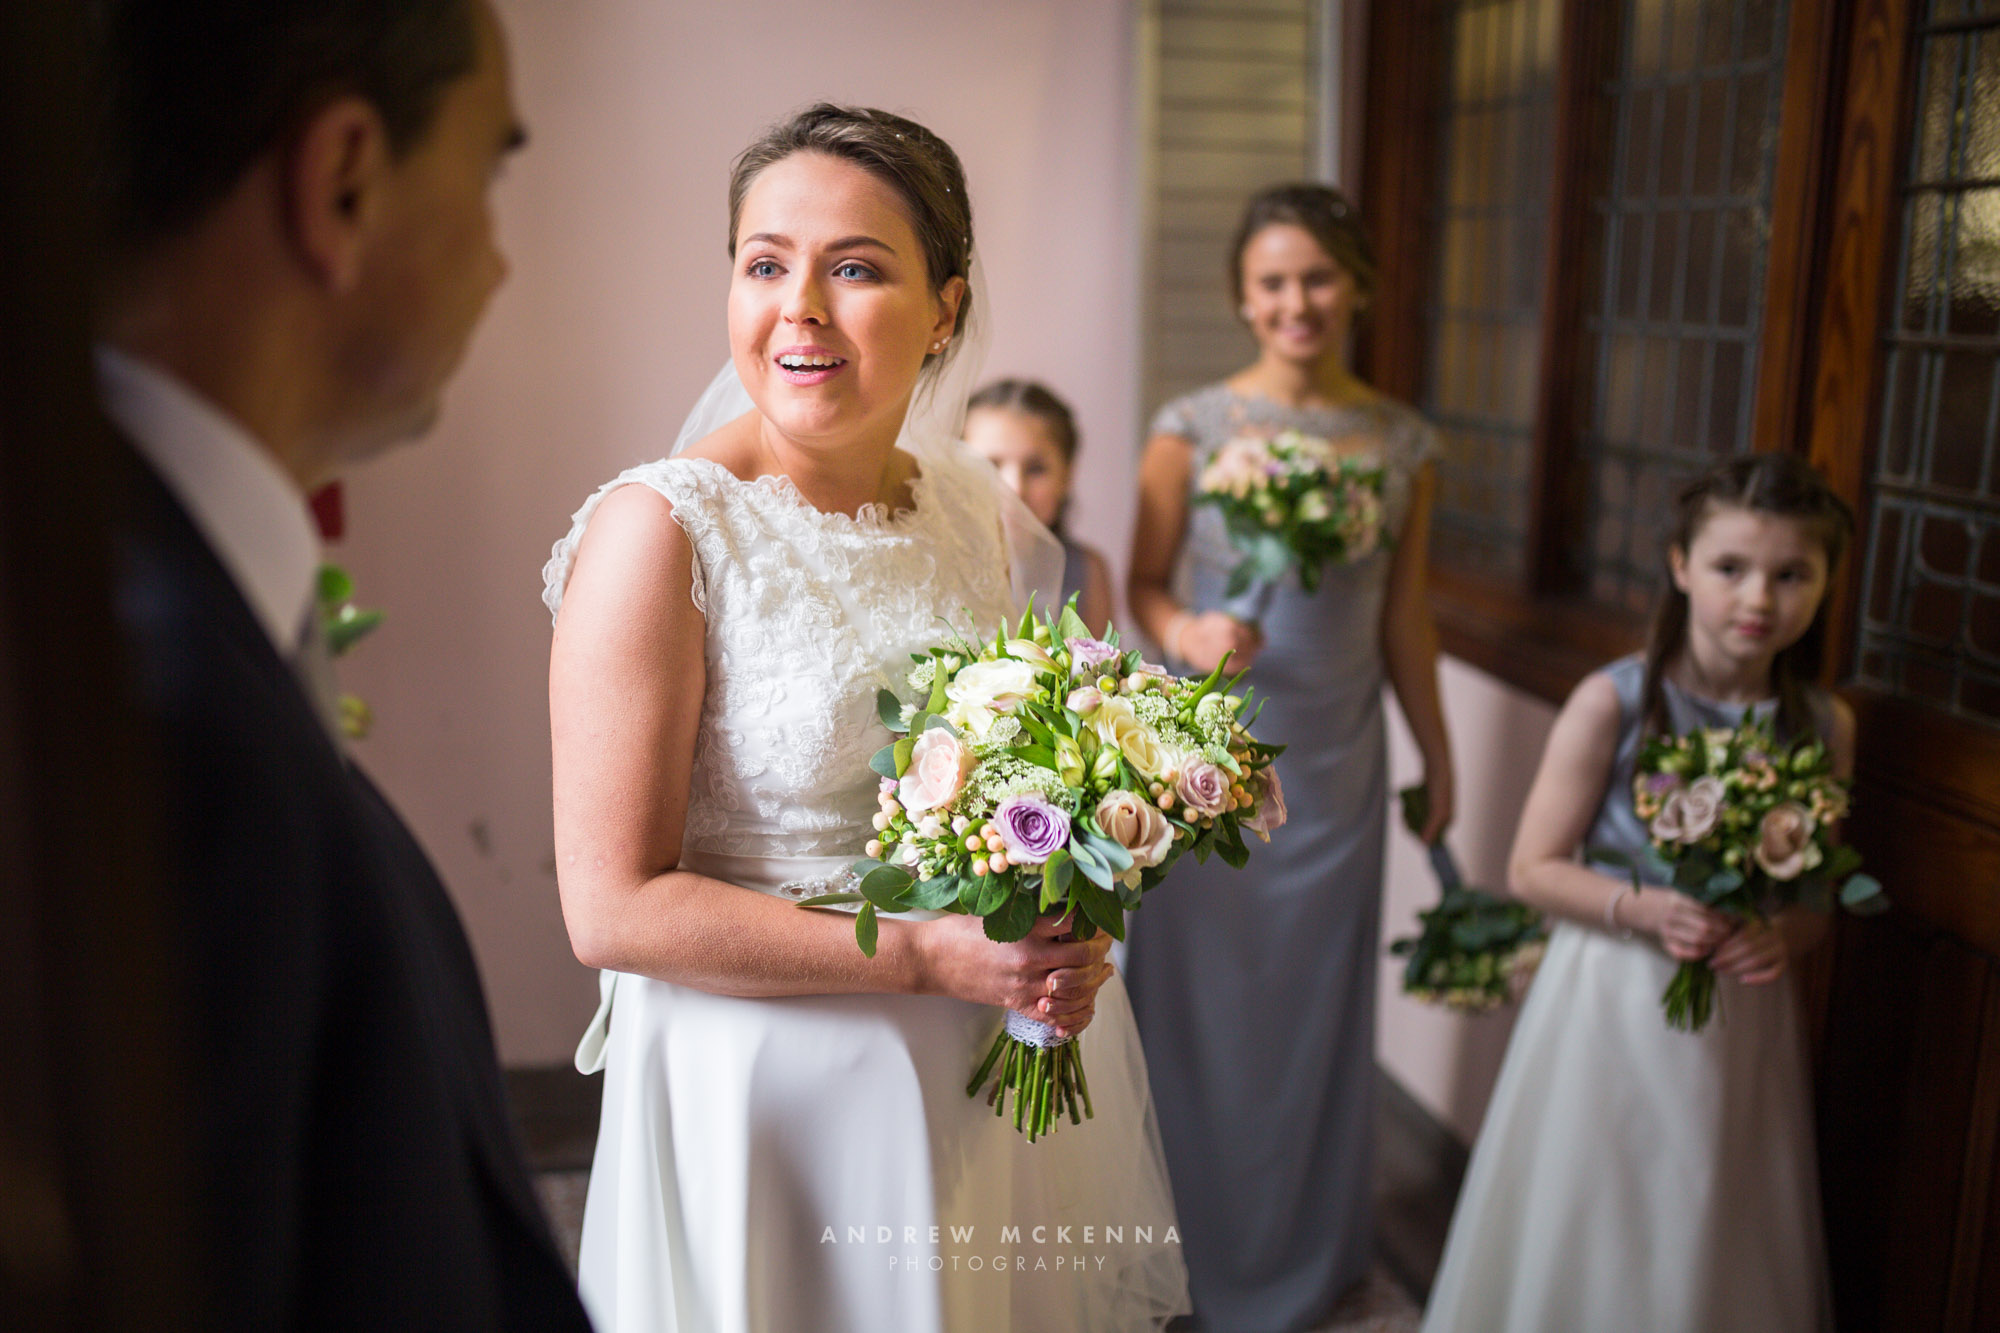 Laura & Andrew - Ballygally Castle Hotel - Wedding Photography N